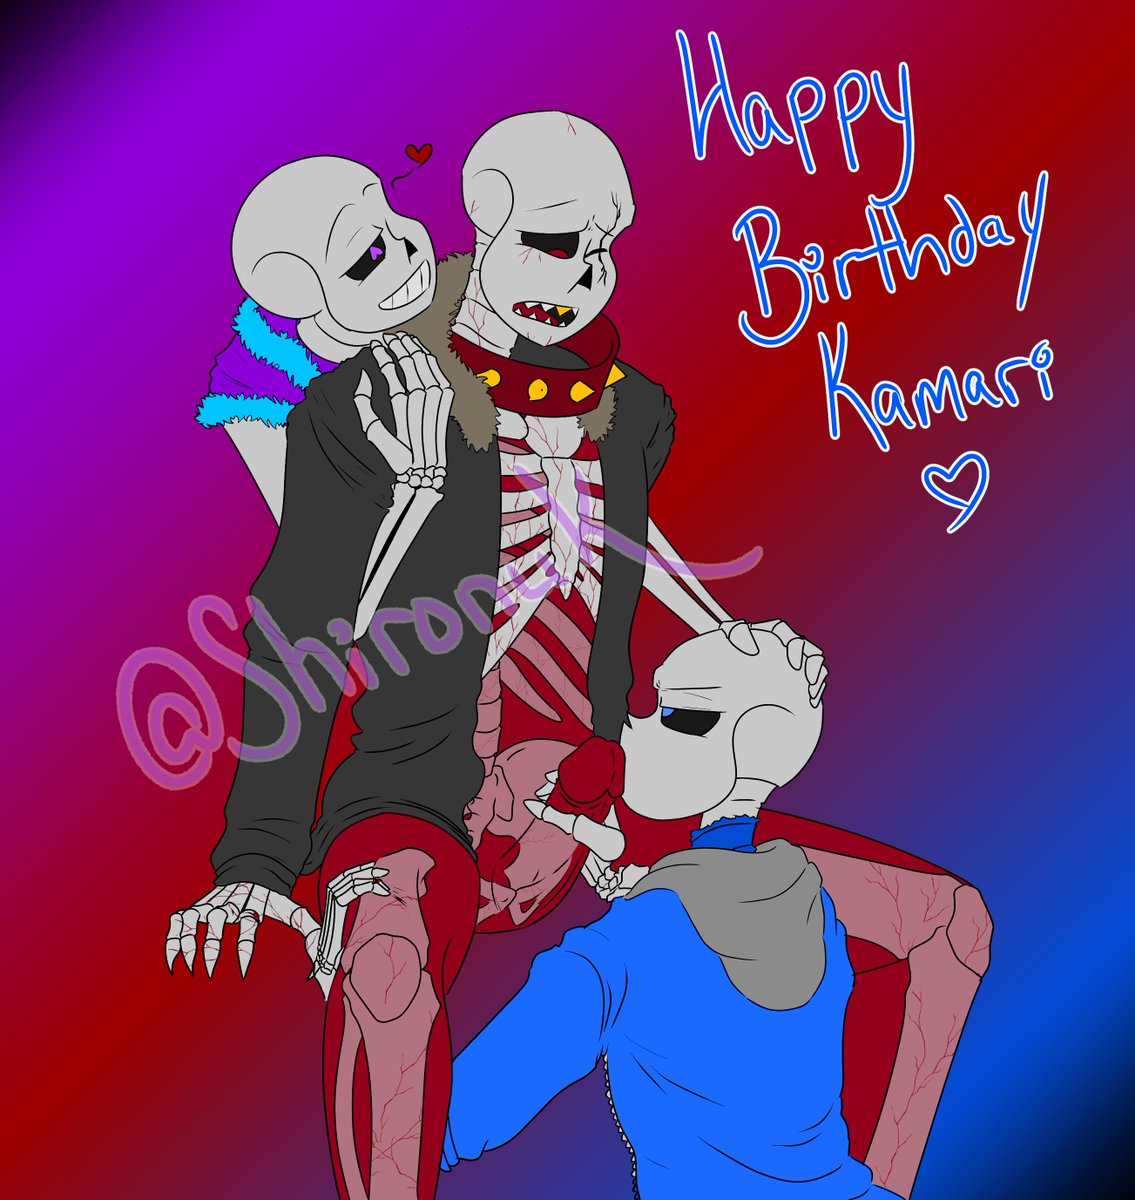 happy super late birthday to @kamari333 ! Here's their burlesque trio :D probably one of my favorite fics ever so dance and lust doting on red <3 #underfell #dancetale #underlust #sans #undertail #burlesque